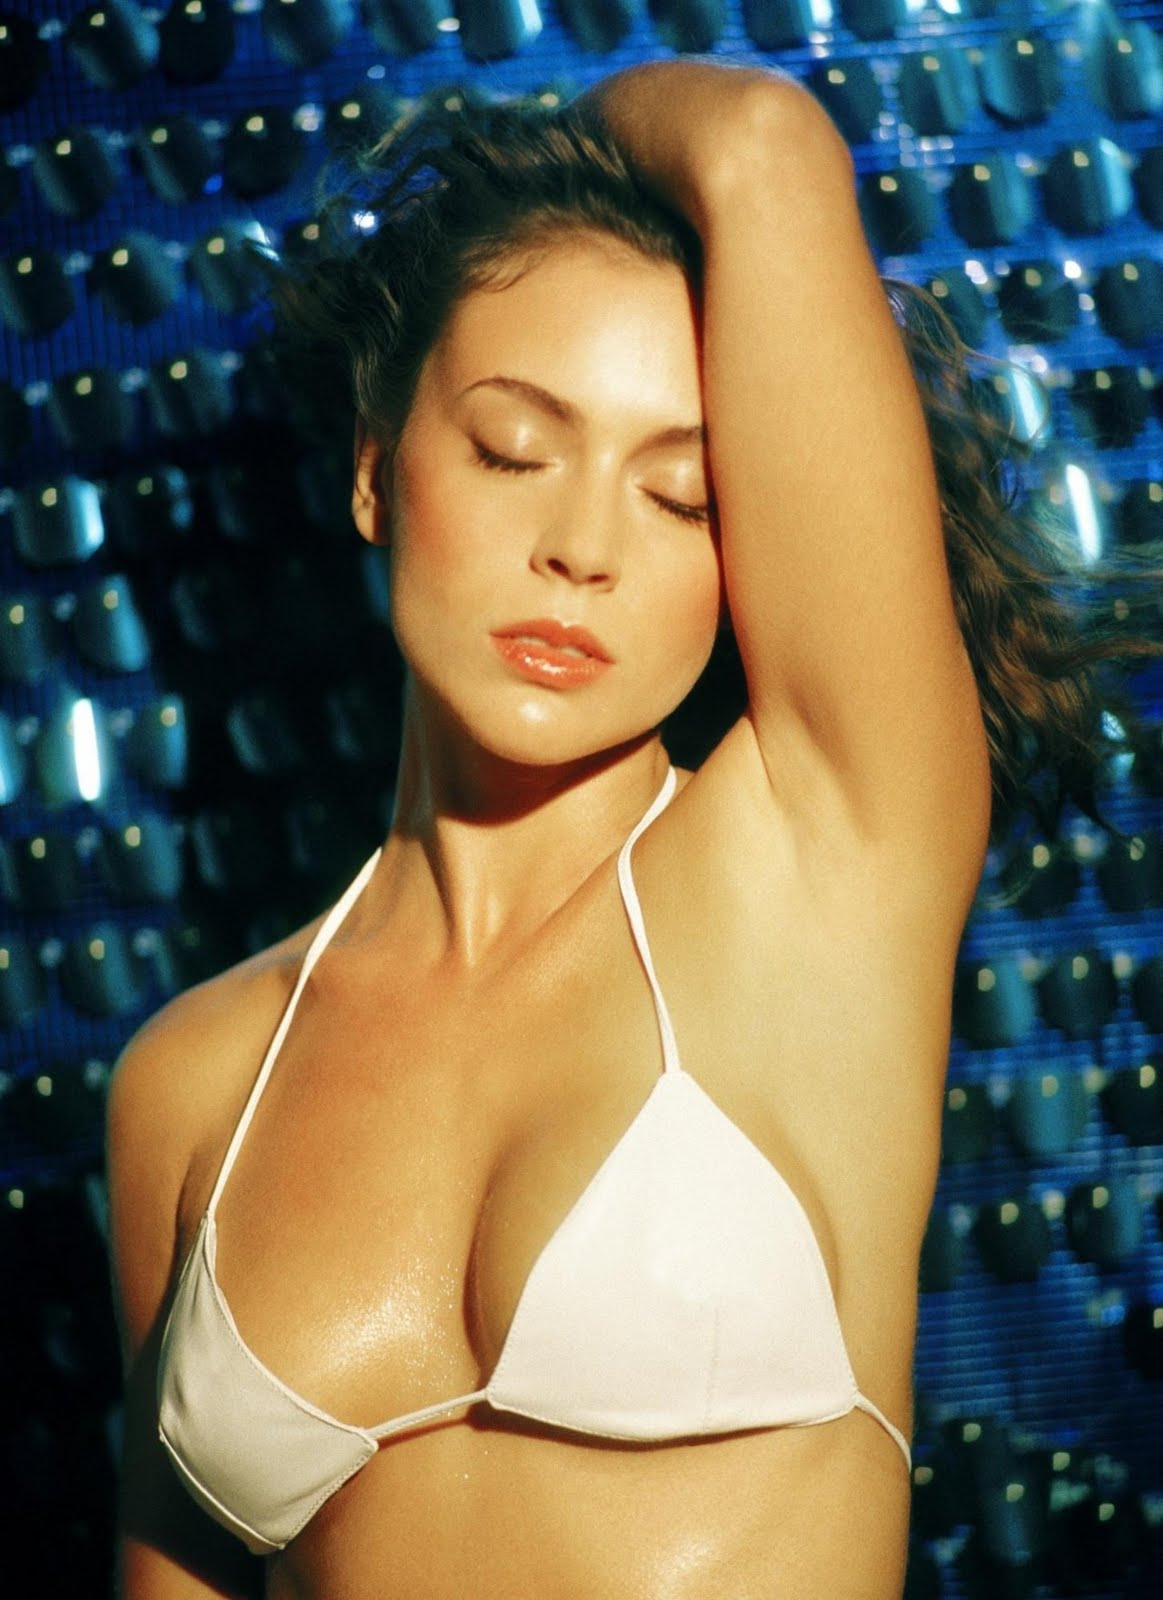 Celebrity Models Alyssa Milano Bikini Photos